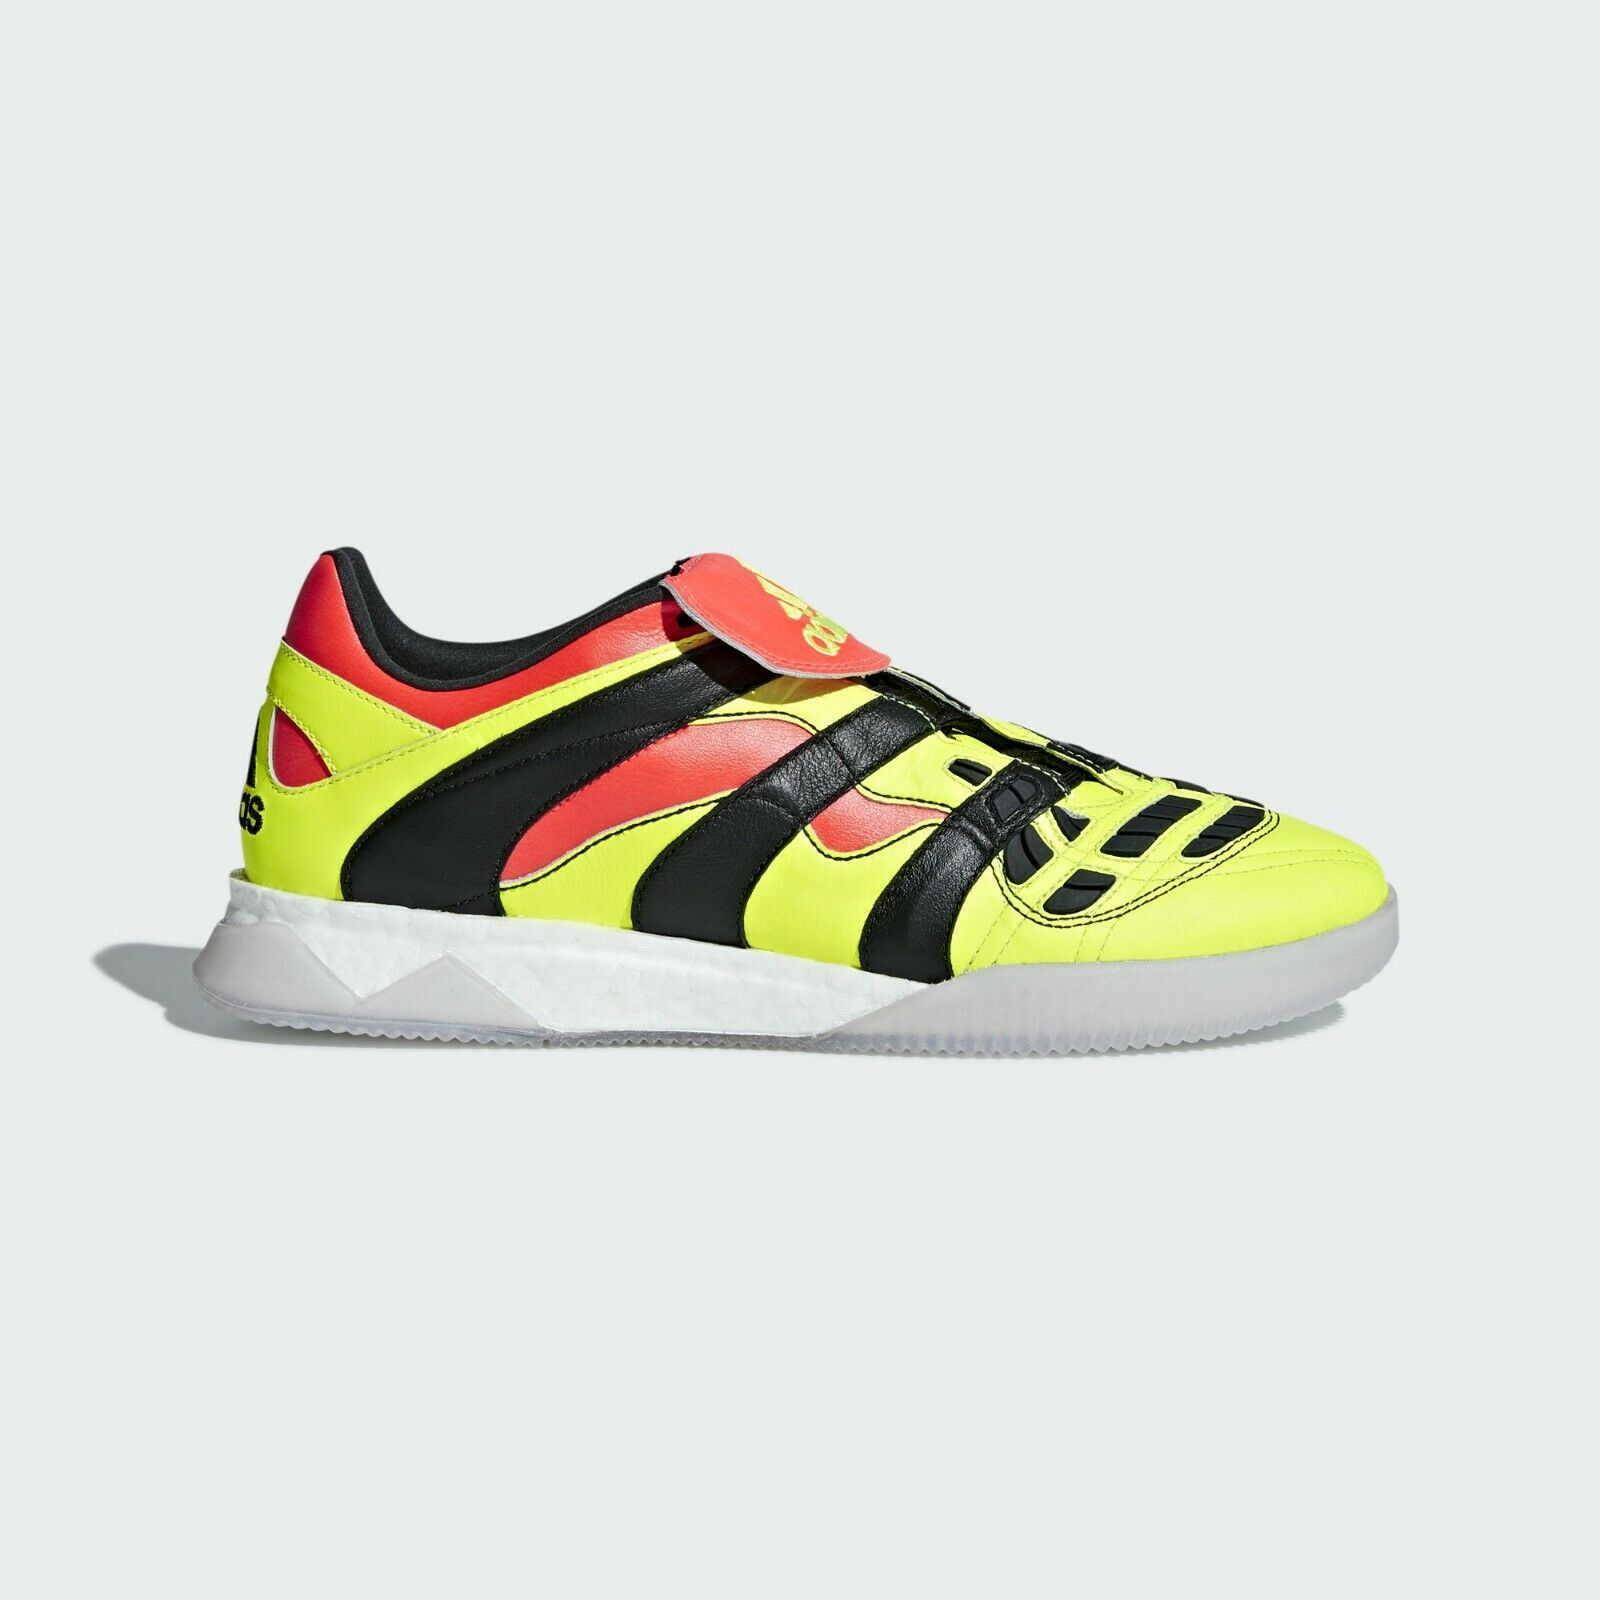 ADIDAS ProugeATOR ACCELERATOR paniers Football Chaussures Homme Taille 9.5 US CG7051